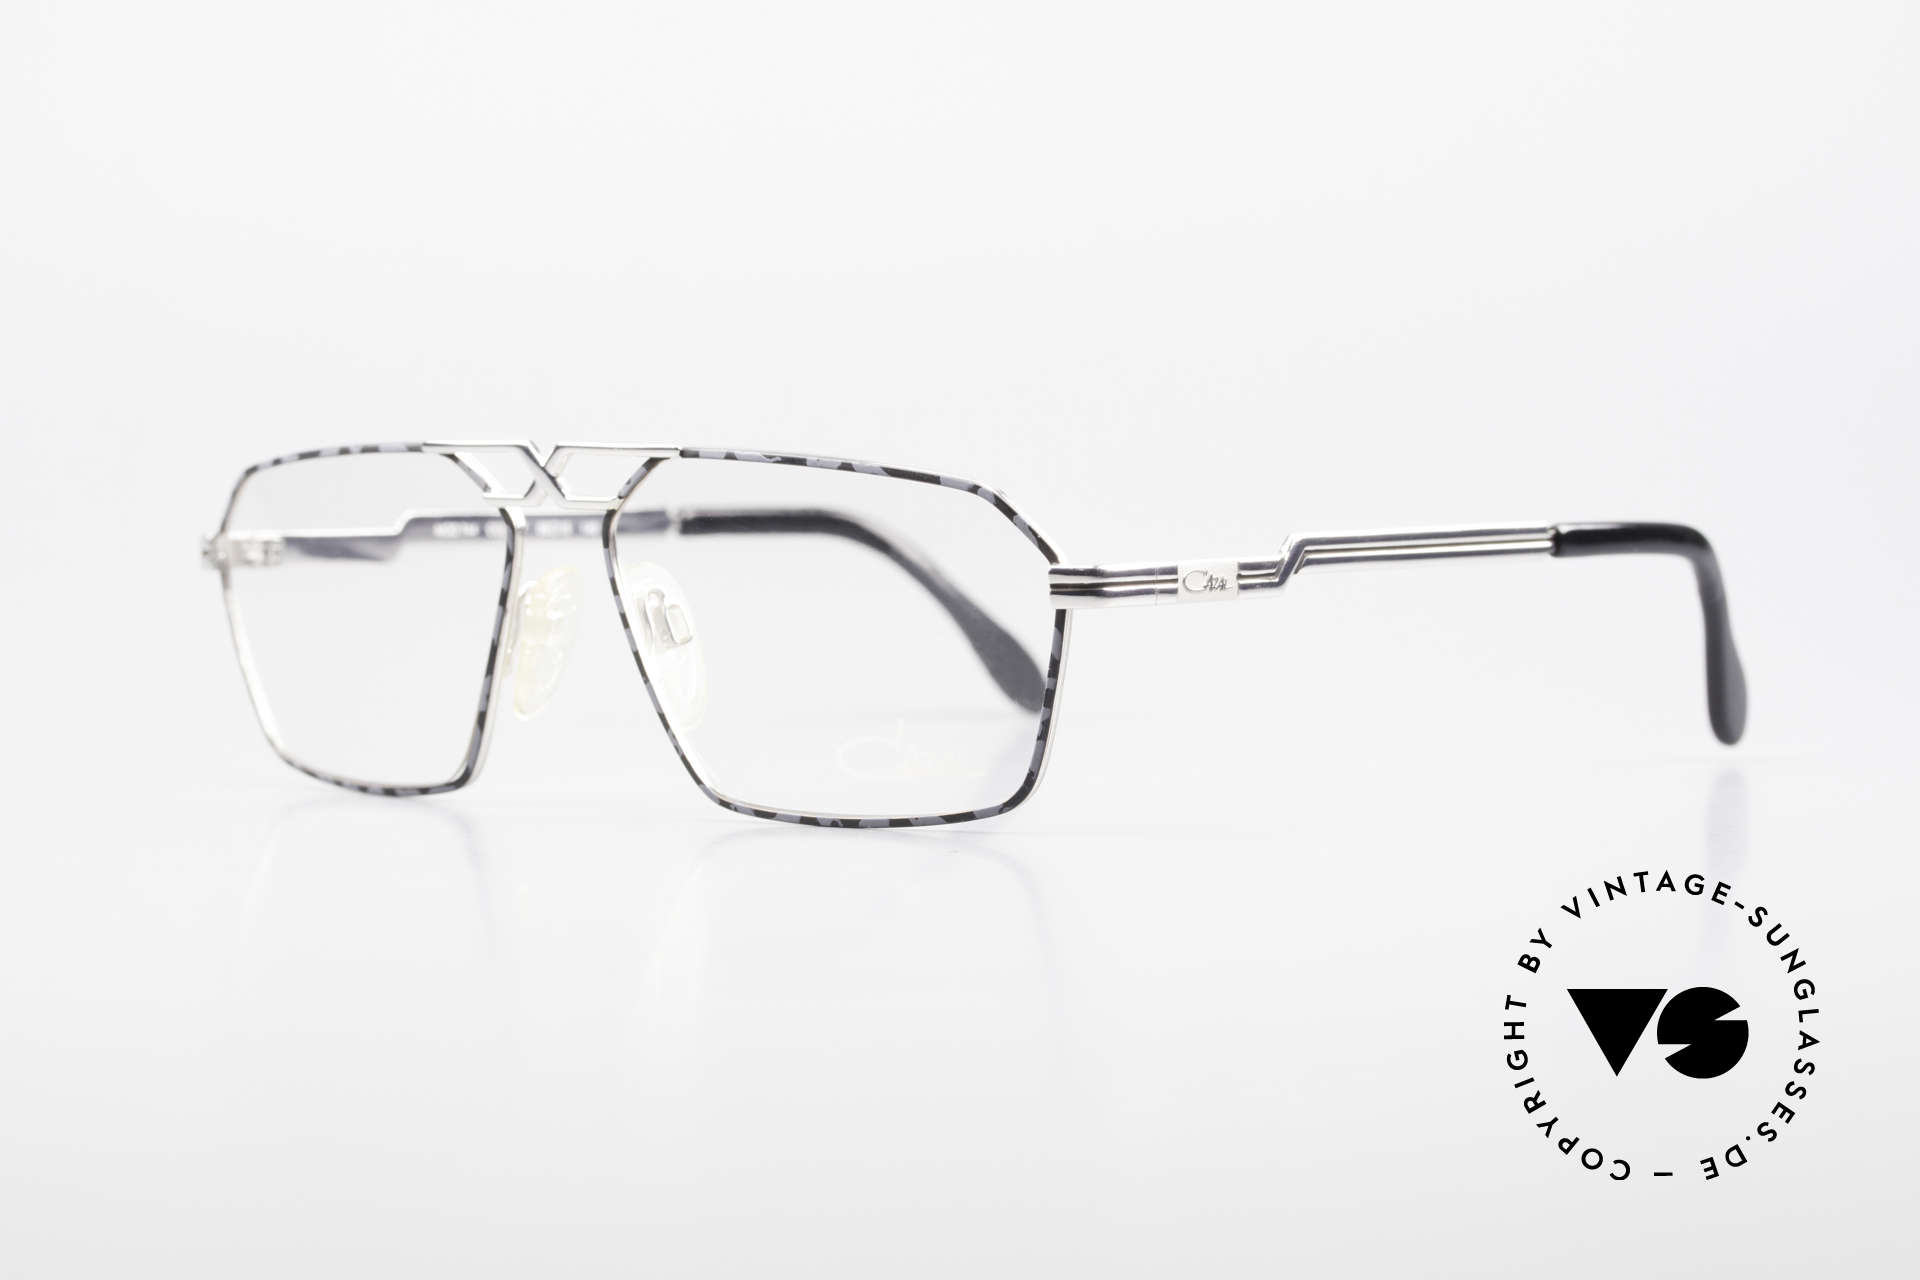 Cazal 744 90's Vintage Glasses For Men, very special frame finish: silver & marbled gray, Made for Men